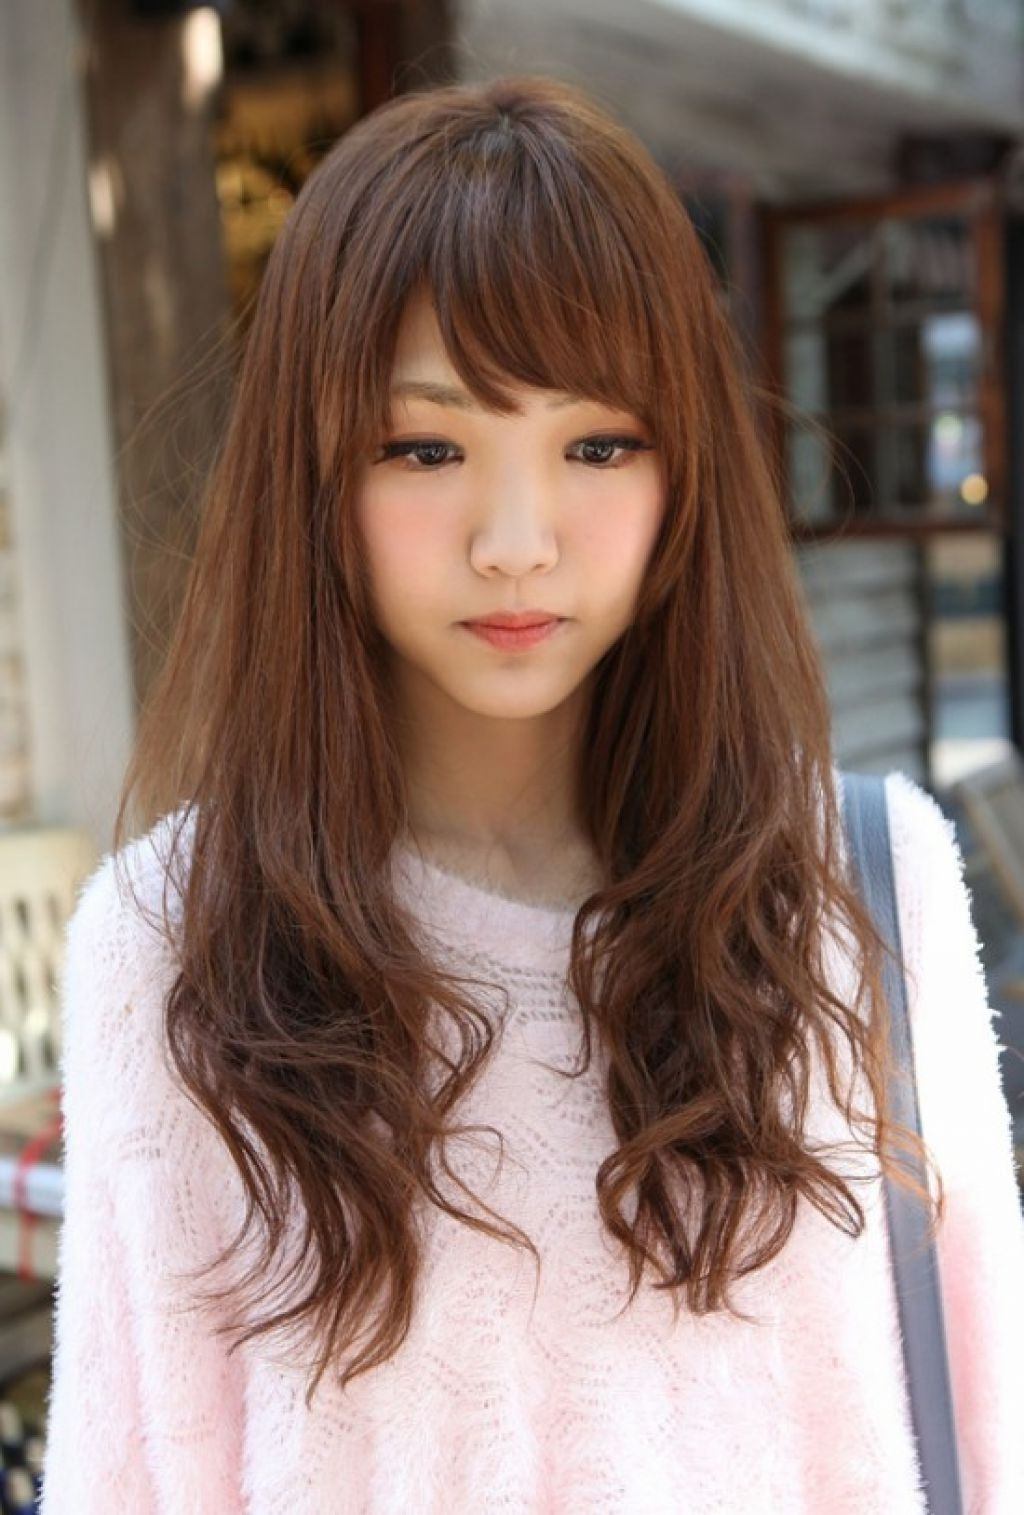 Korean Hairstyles For Girl Those Korean Hairstyles For Women Here Will Make You Look39s So